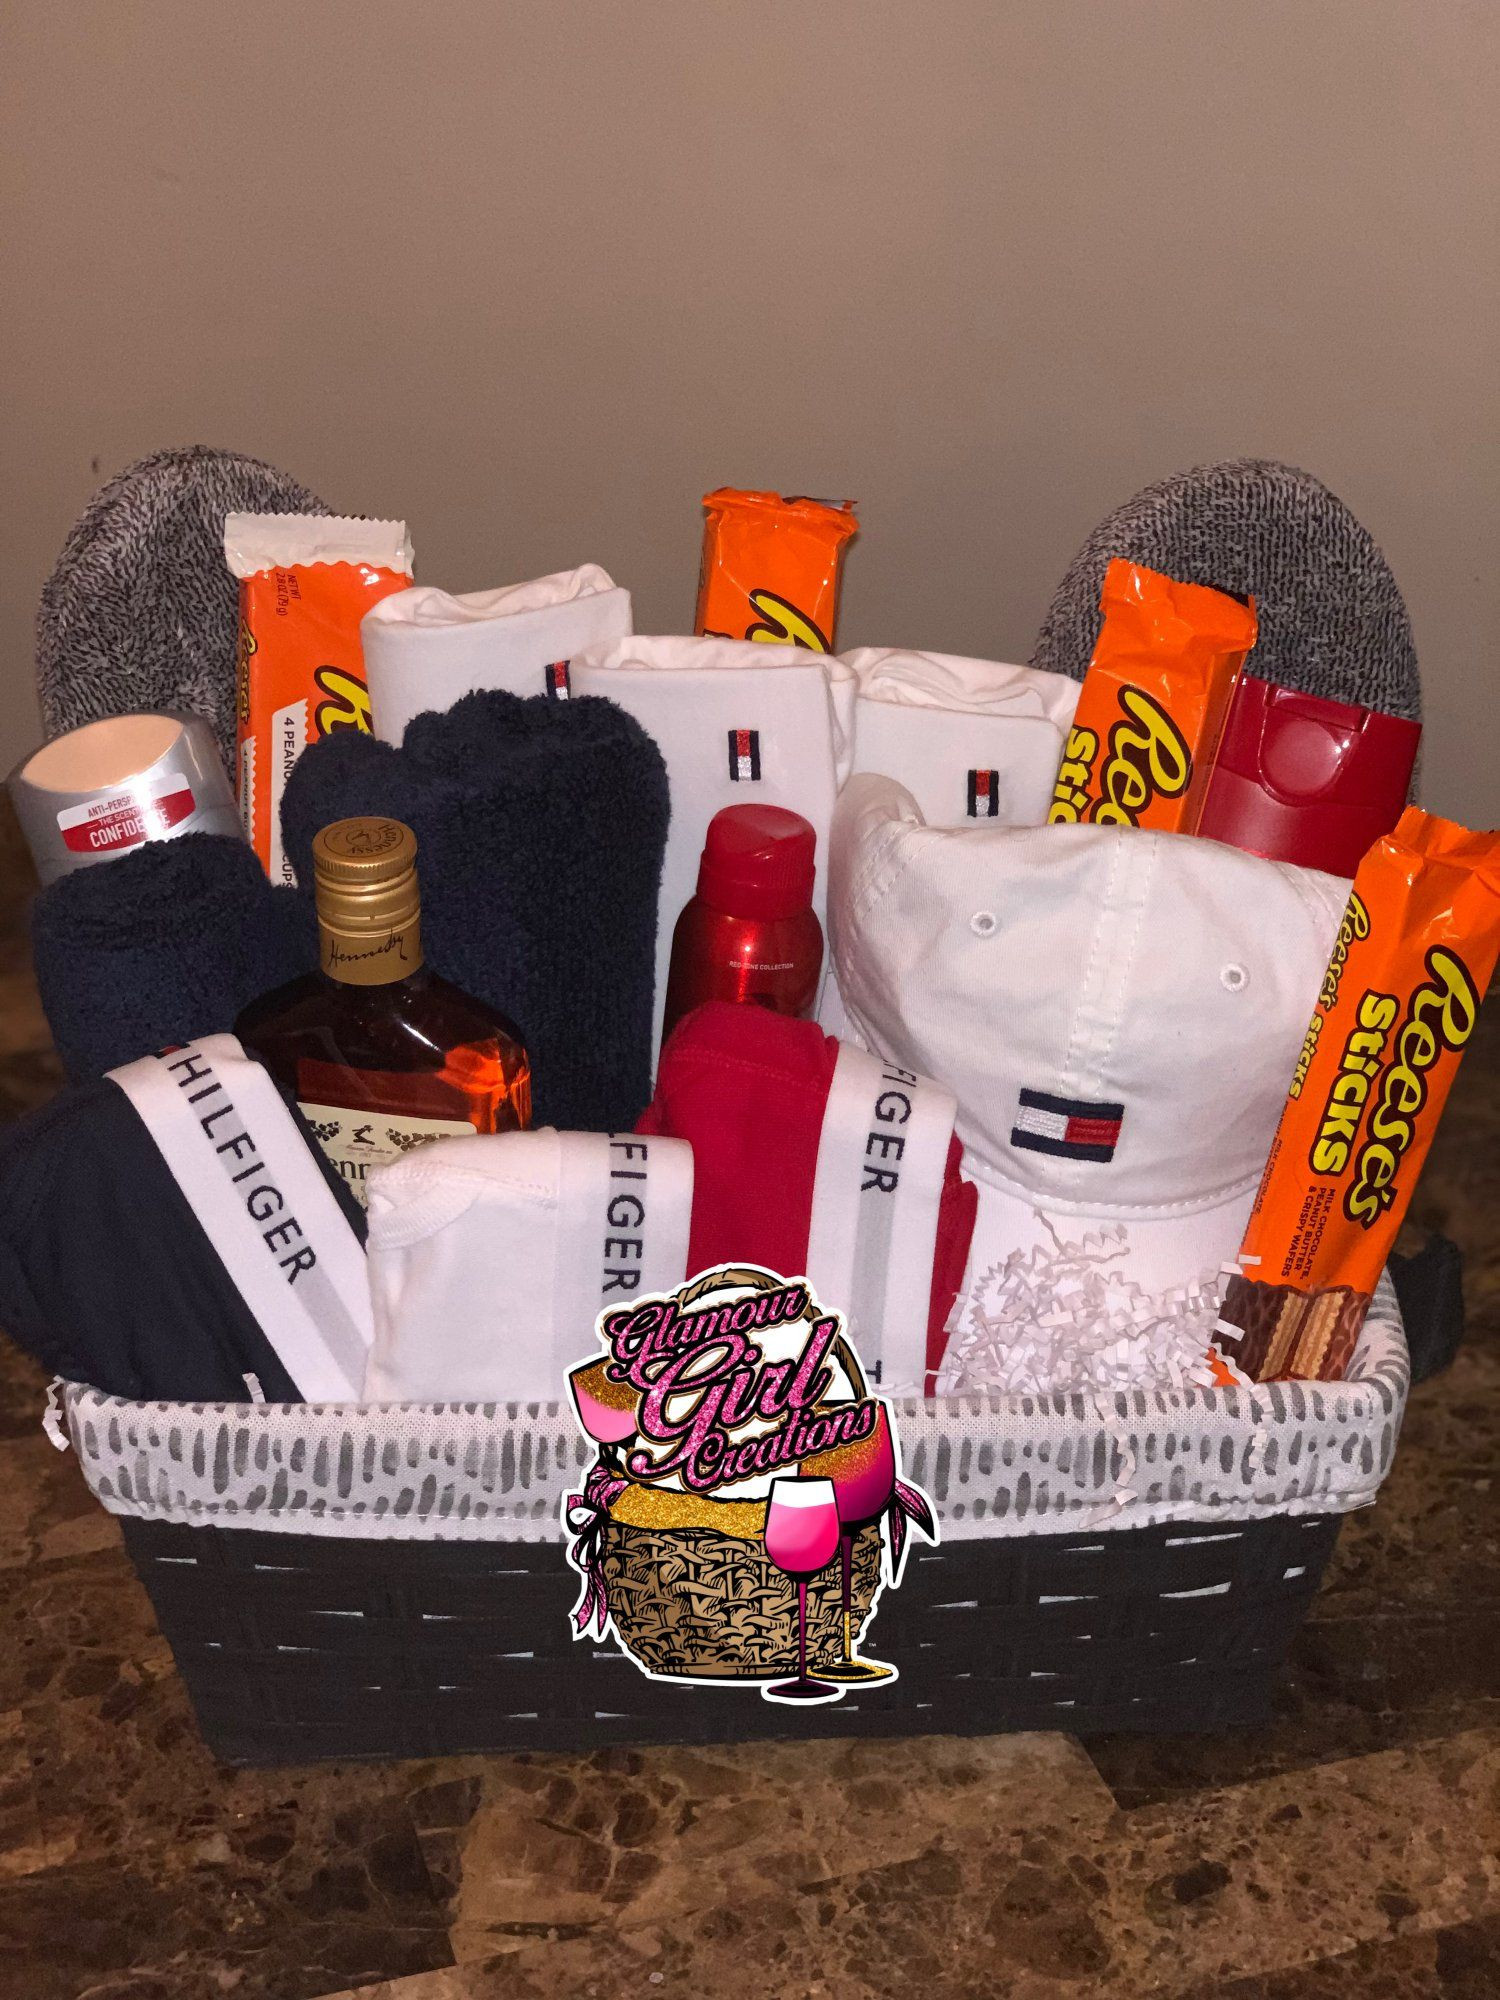 Best ideas about Diy Birthday Gifts For Him . Save or Pin Tommy Hilfiger basket Tommy hilfiger Now.